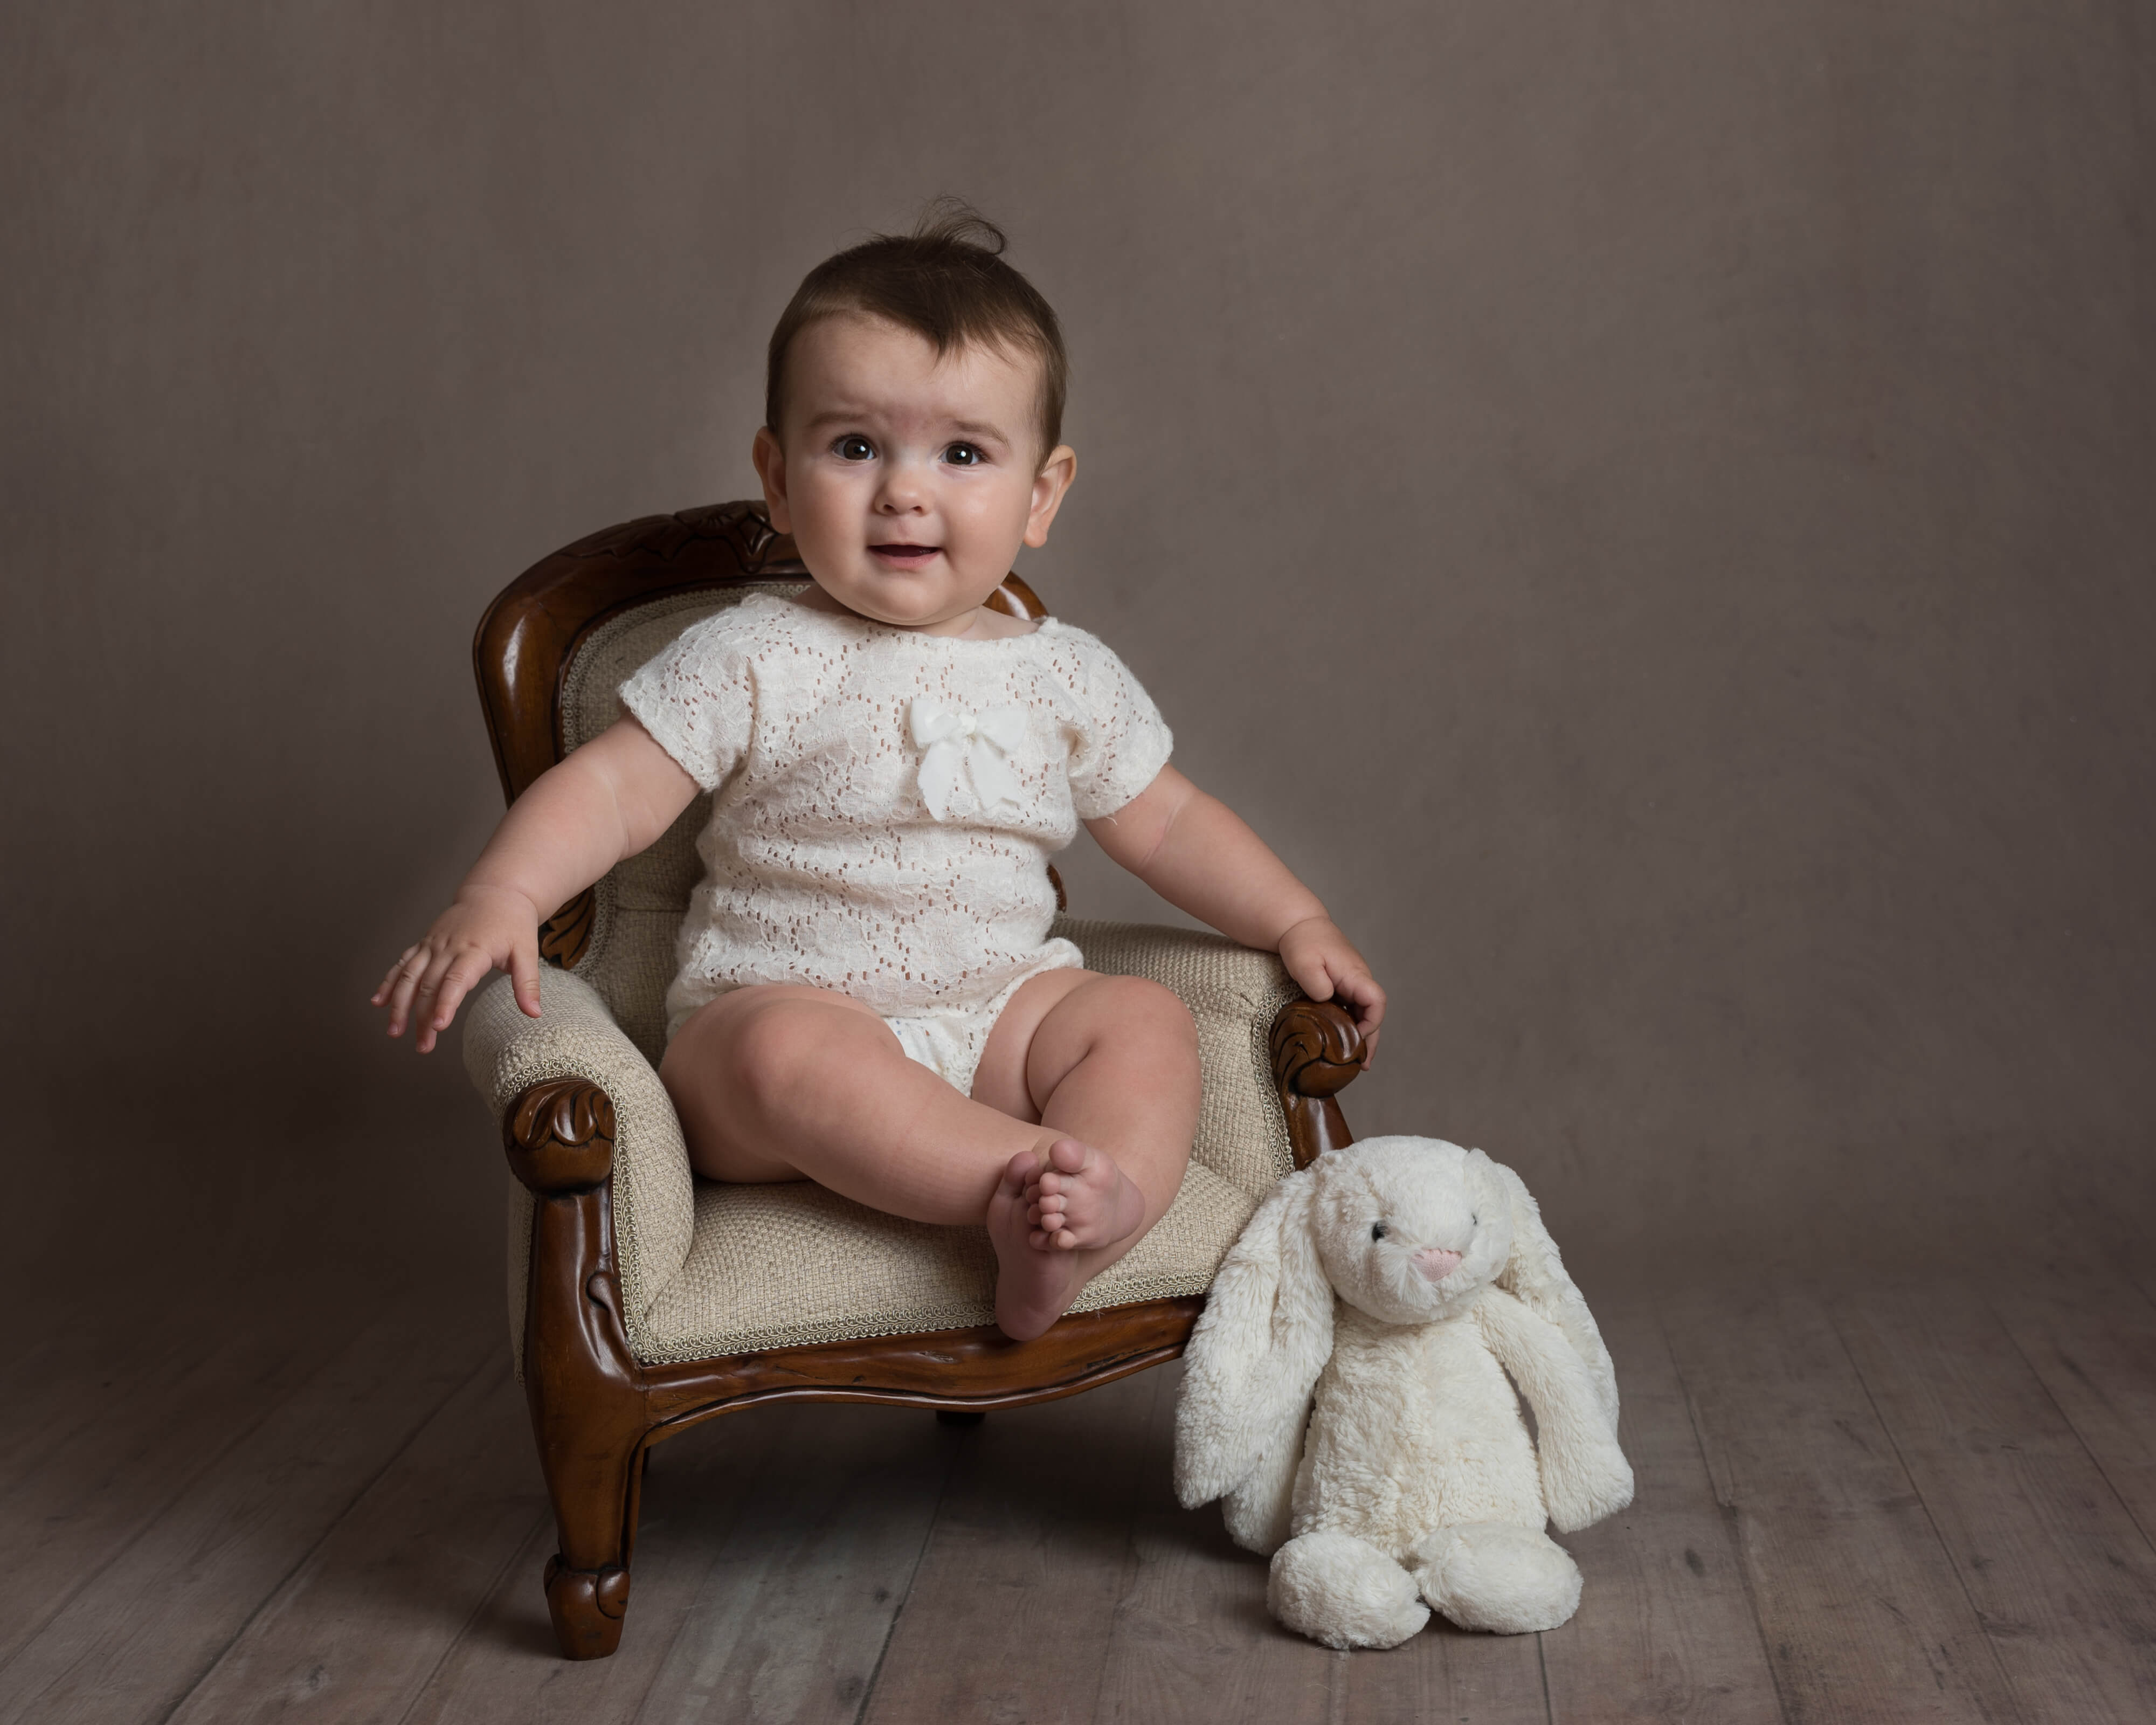 Slice of Life Little Sitters Session Gallery - Baby girl sat in a chair posing with a cuddly rabbit toy